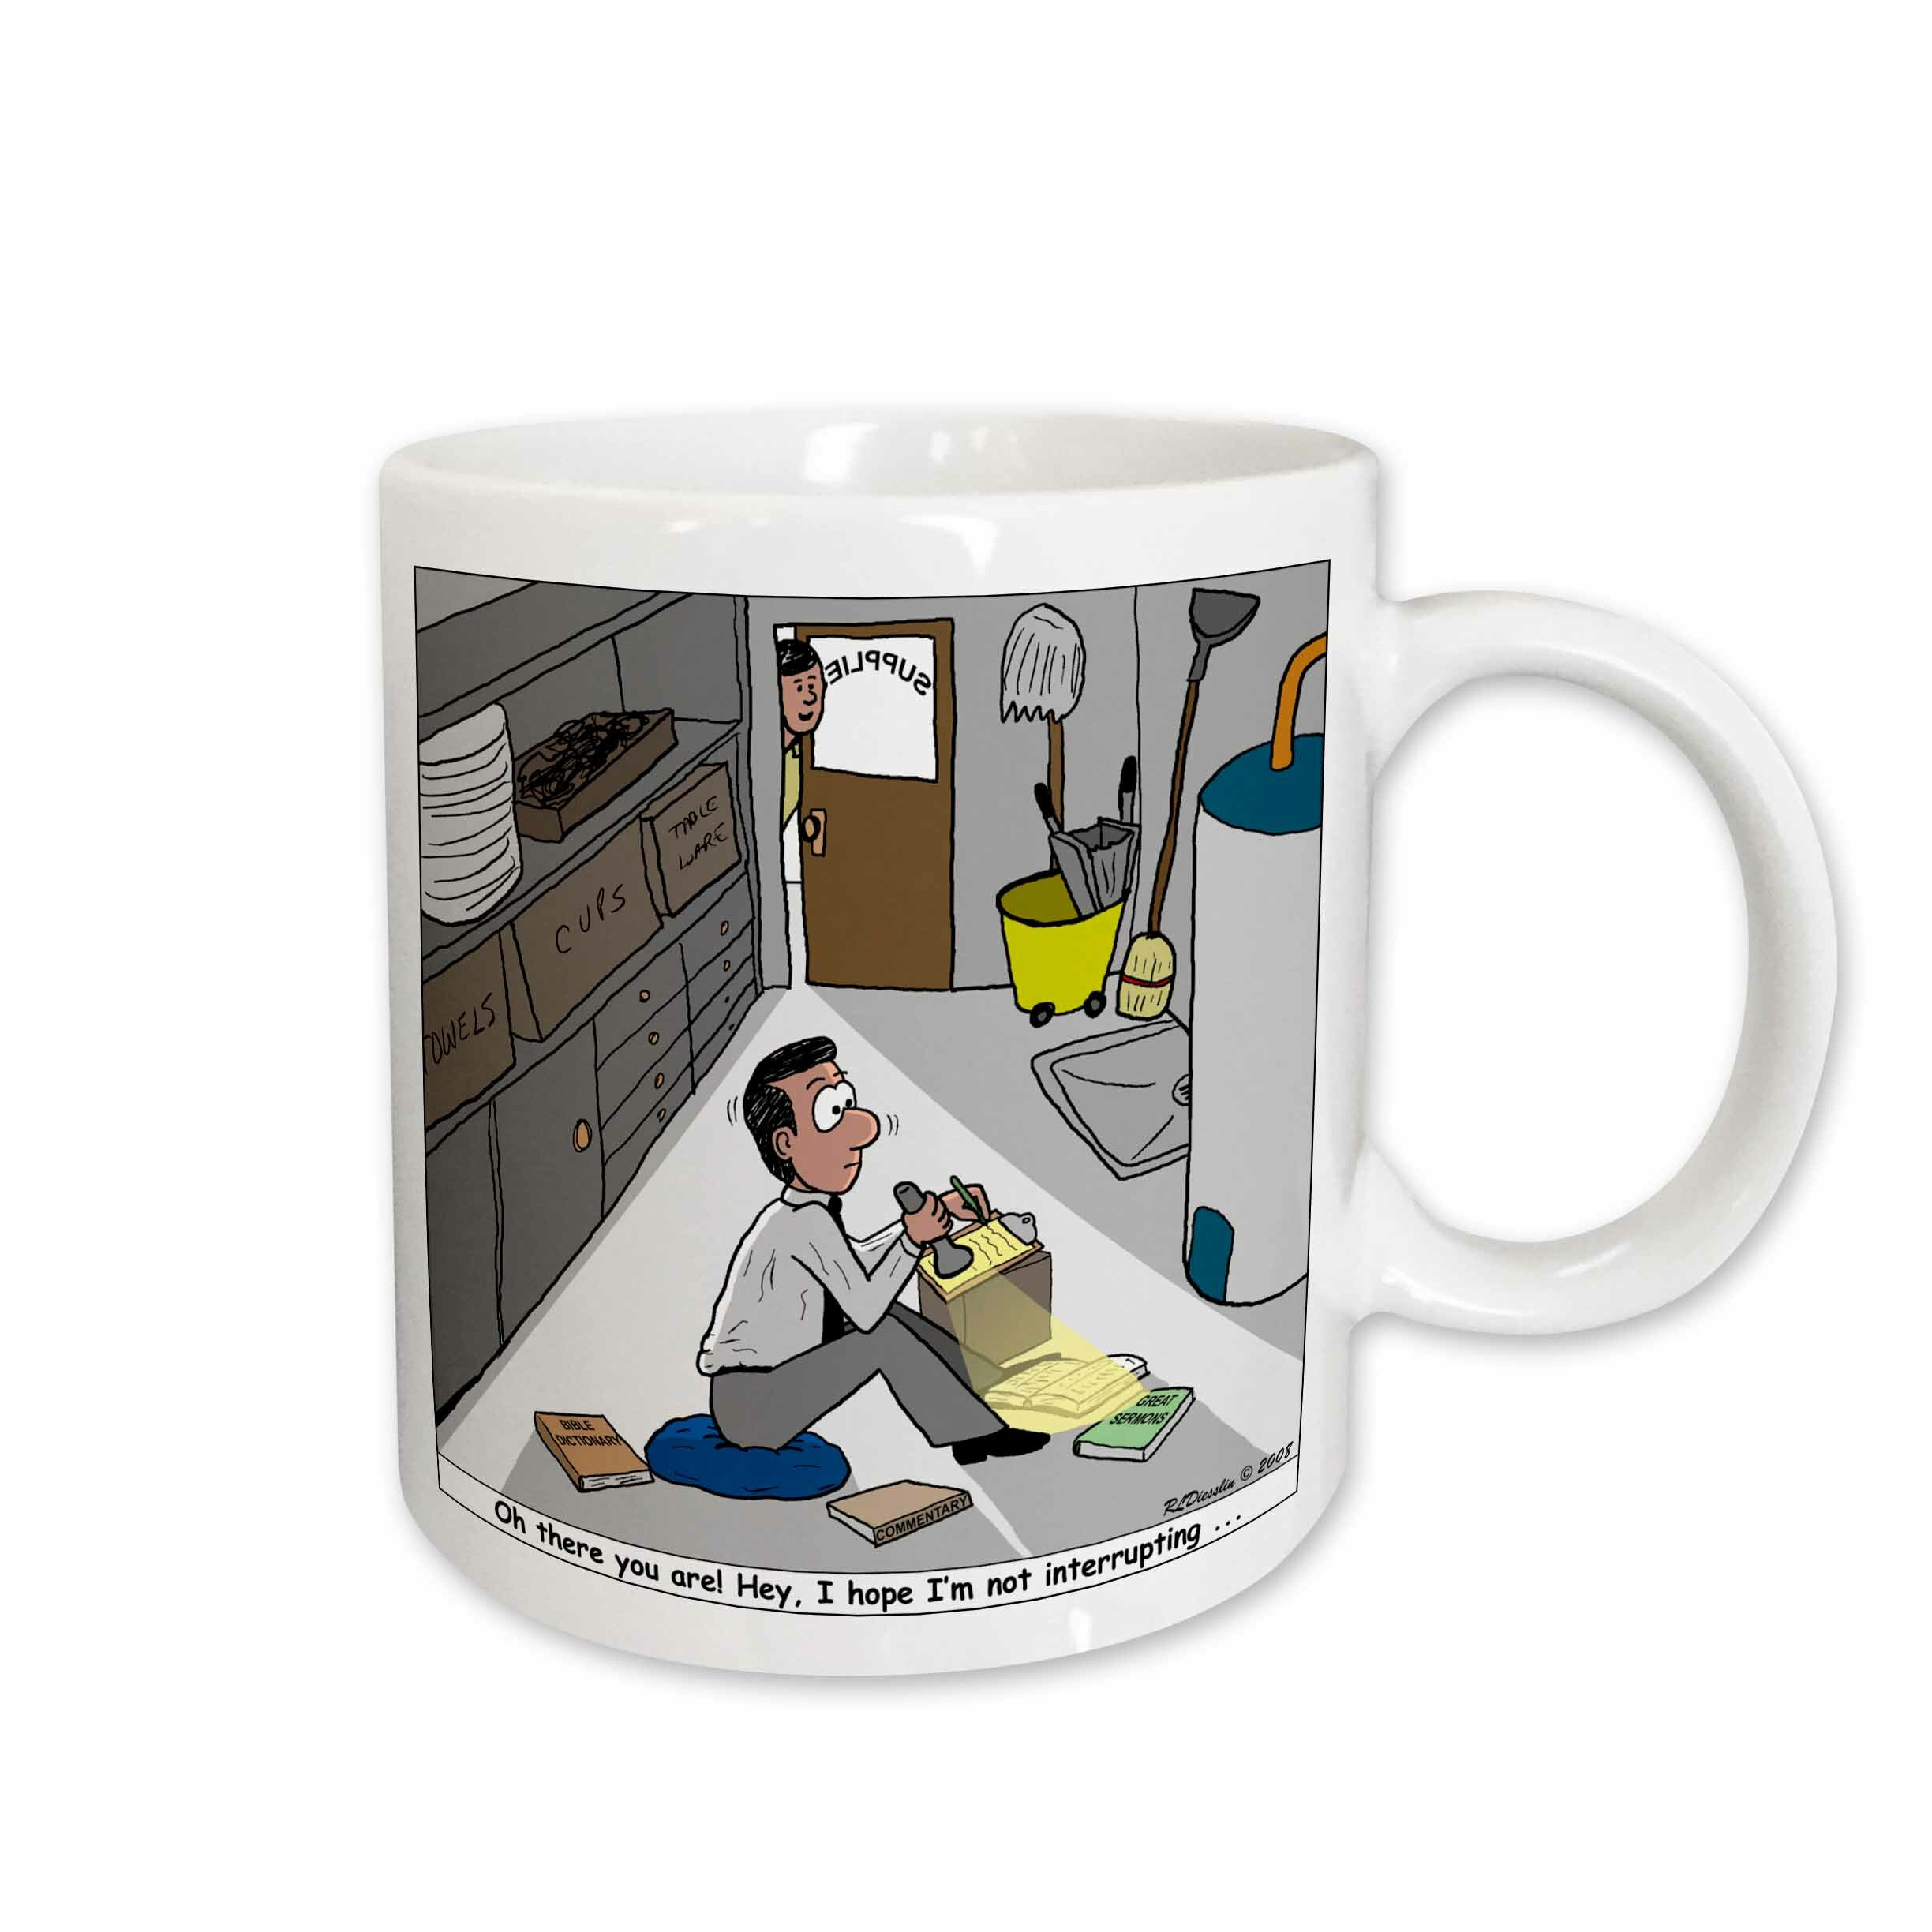 East Urban Home Pastor Privacy And Interruption Issues Coffee Mug Wayfair